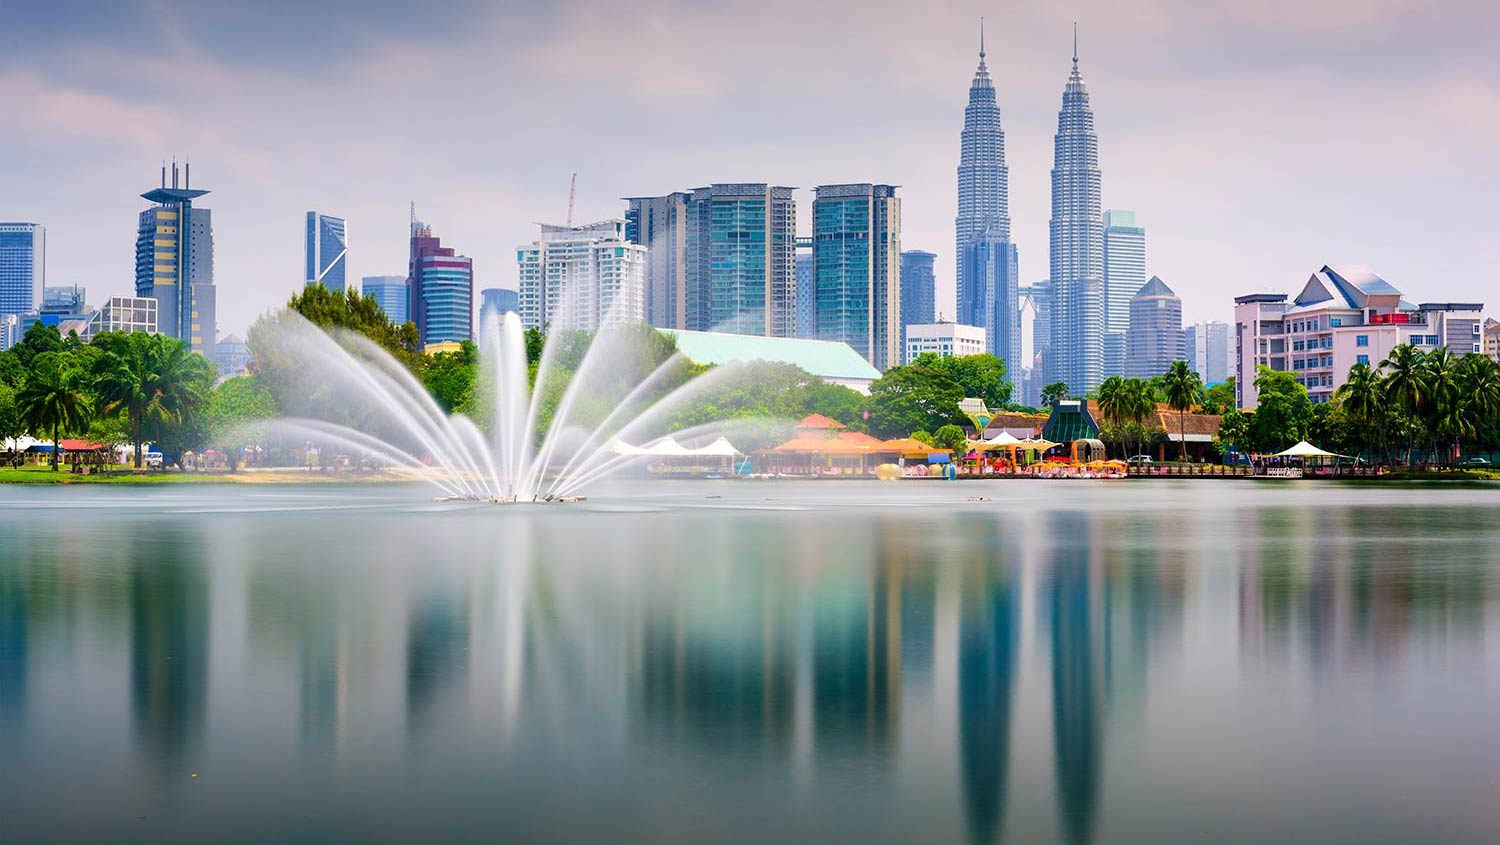 A fountain sprays in multiple directions in front of downtown Kuala Lumpur